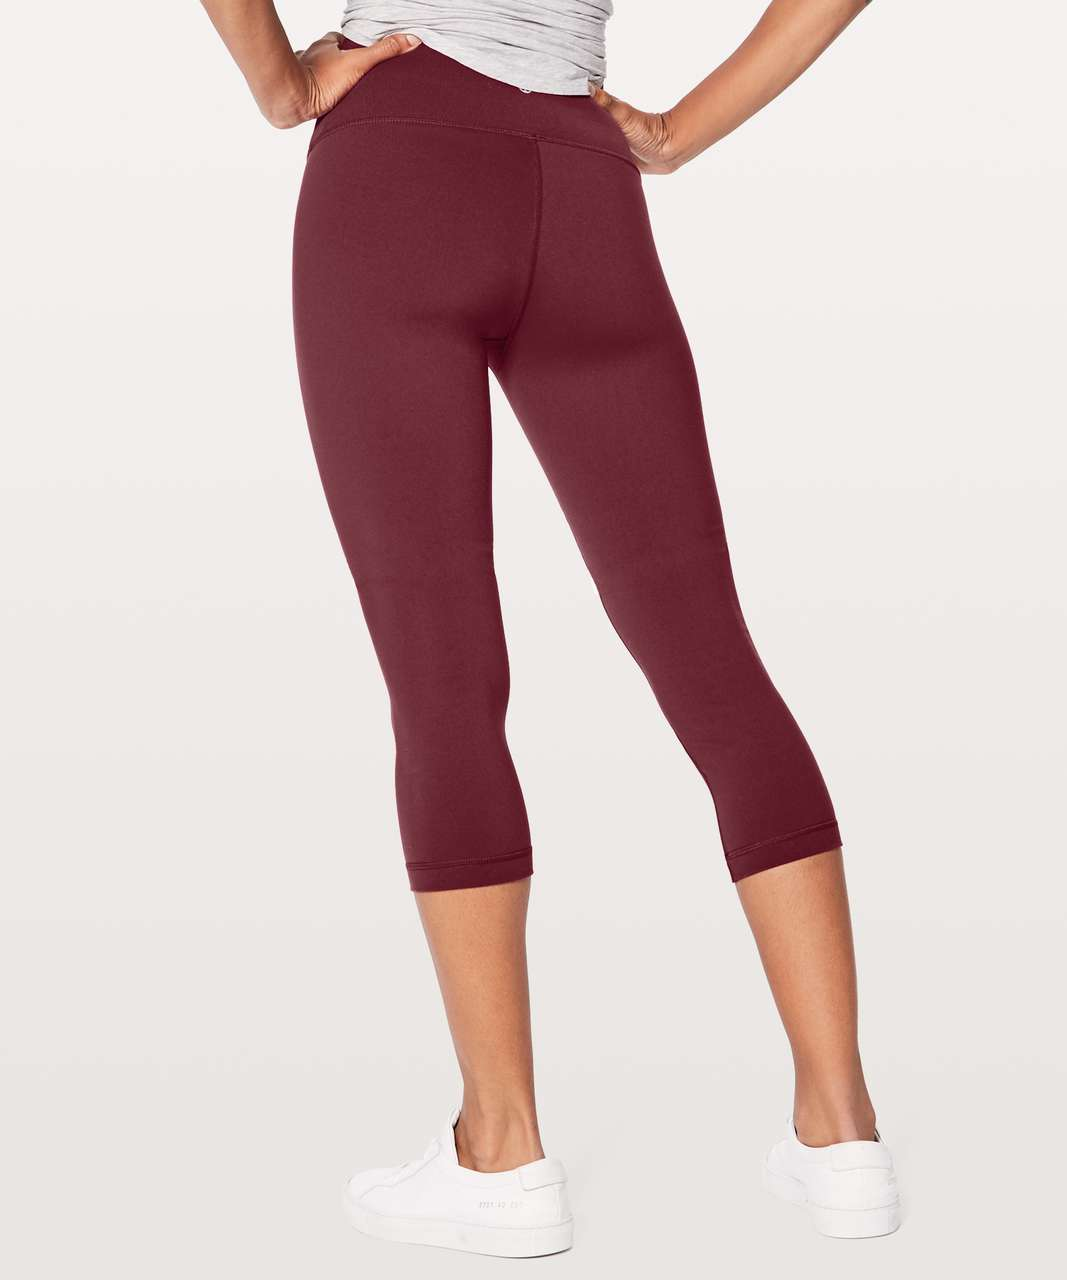 "Lululemon Wunder Under Crop (Hi-Rise) 21"" - Deep Luxe"